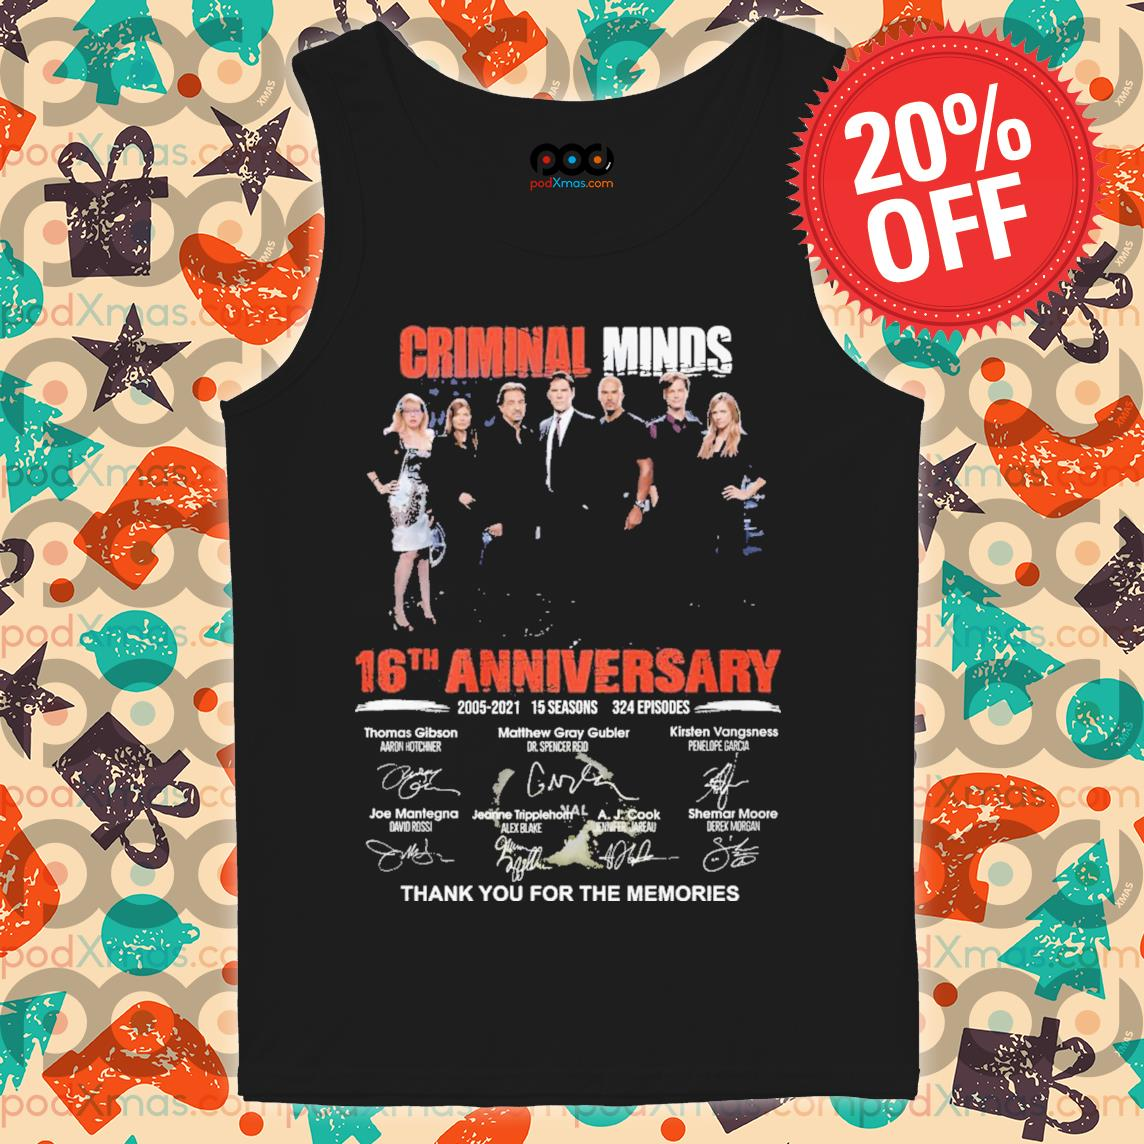 Criminal minds 16th Anniversary signature thank you for the memories s Tank top PODxmas den